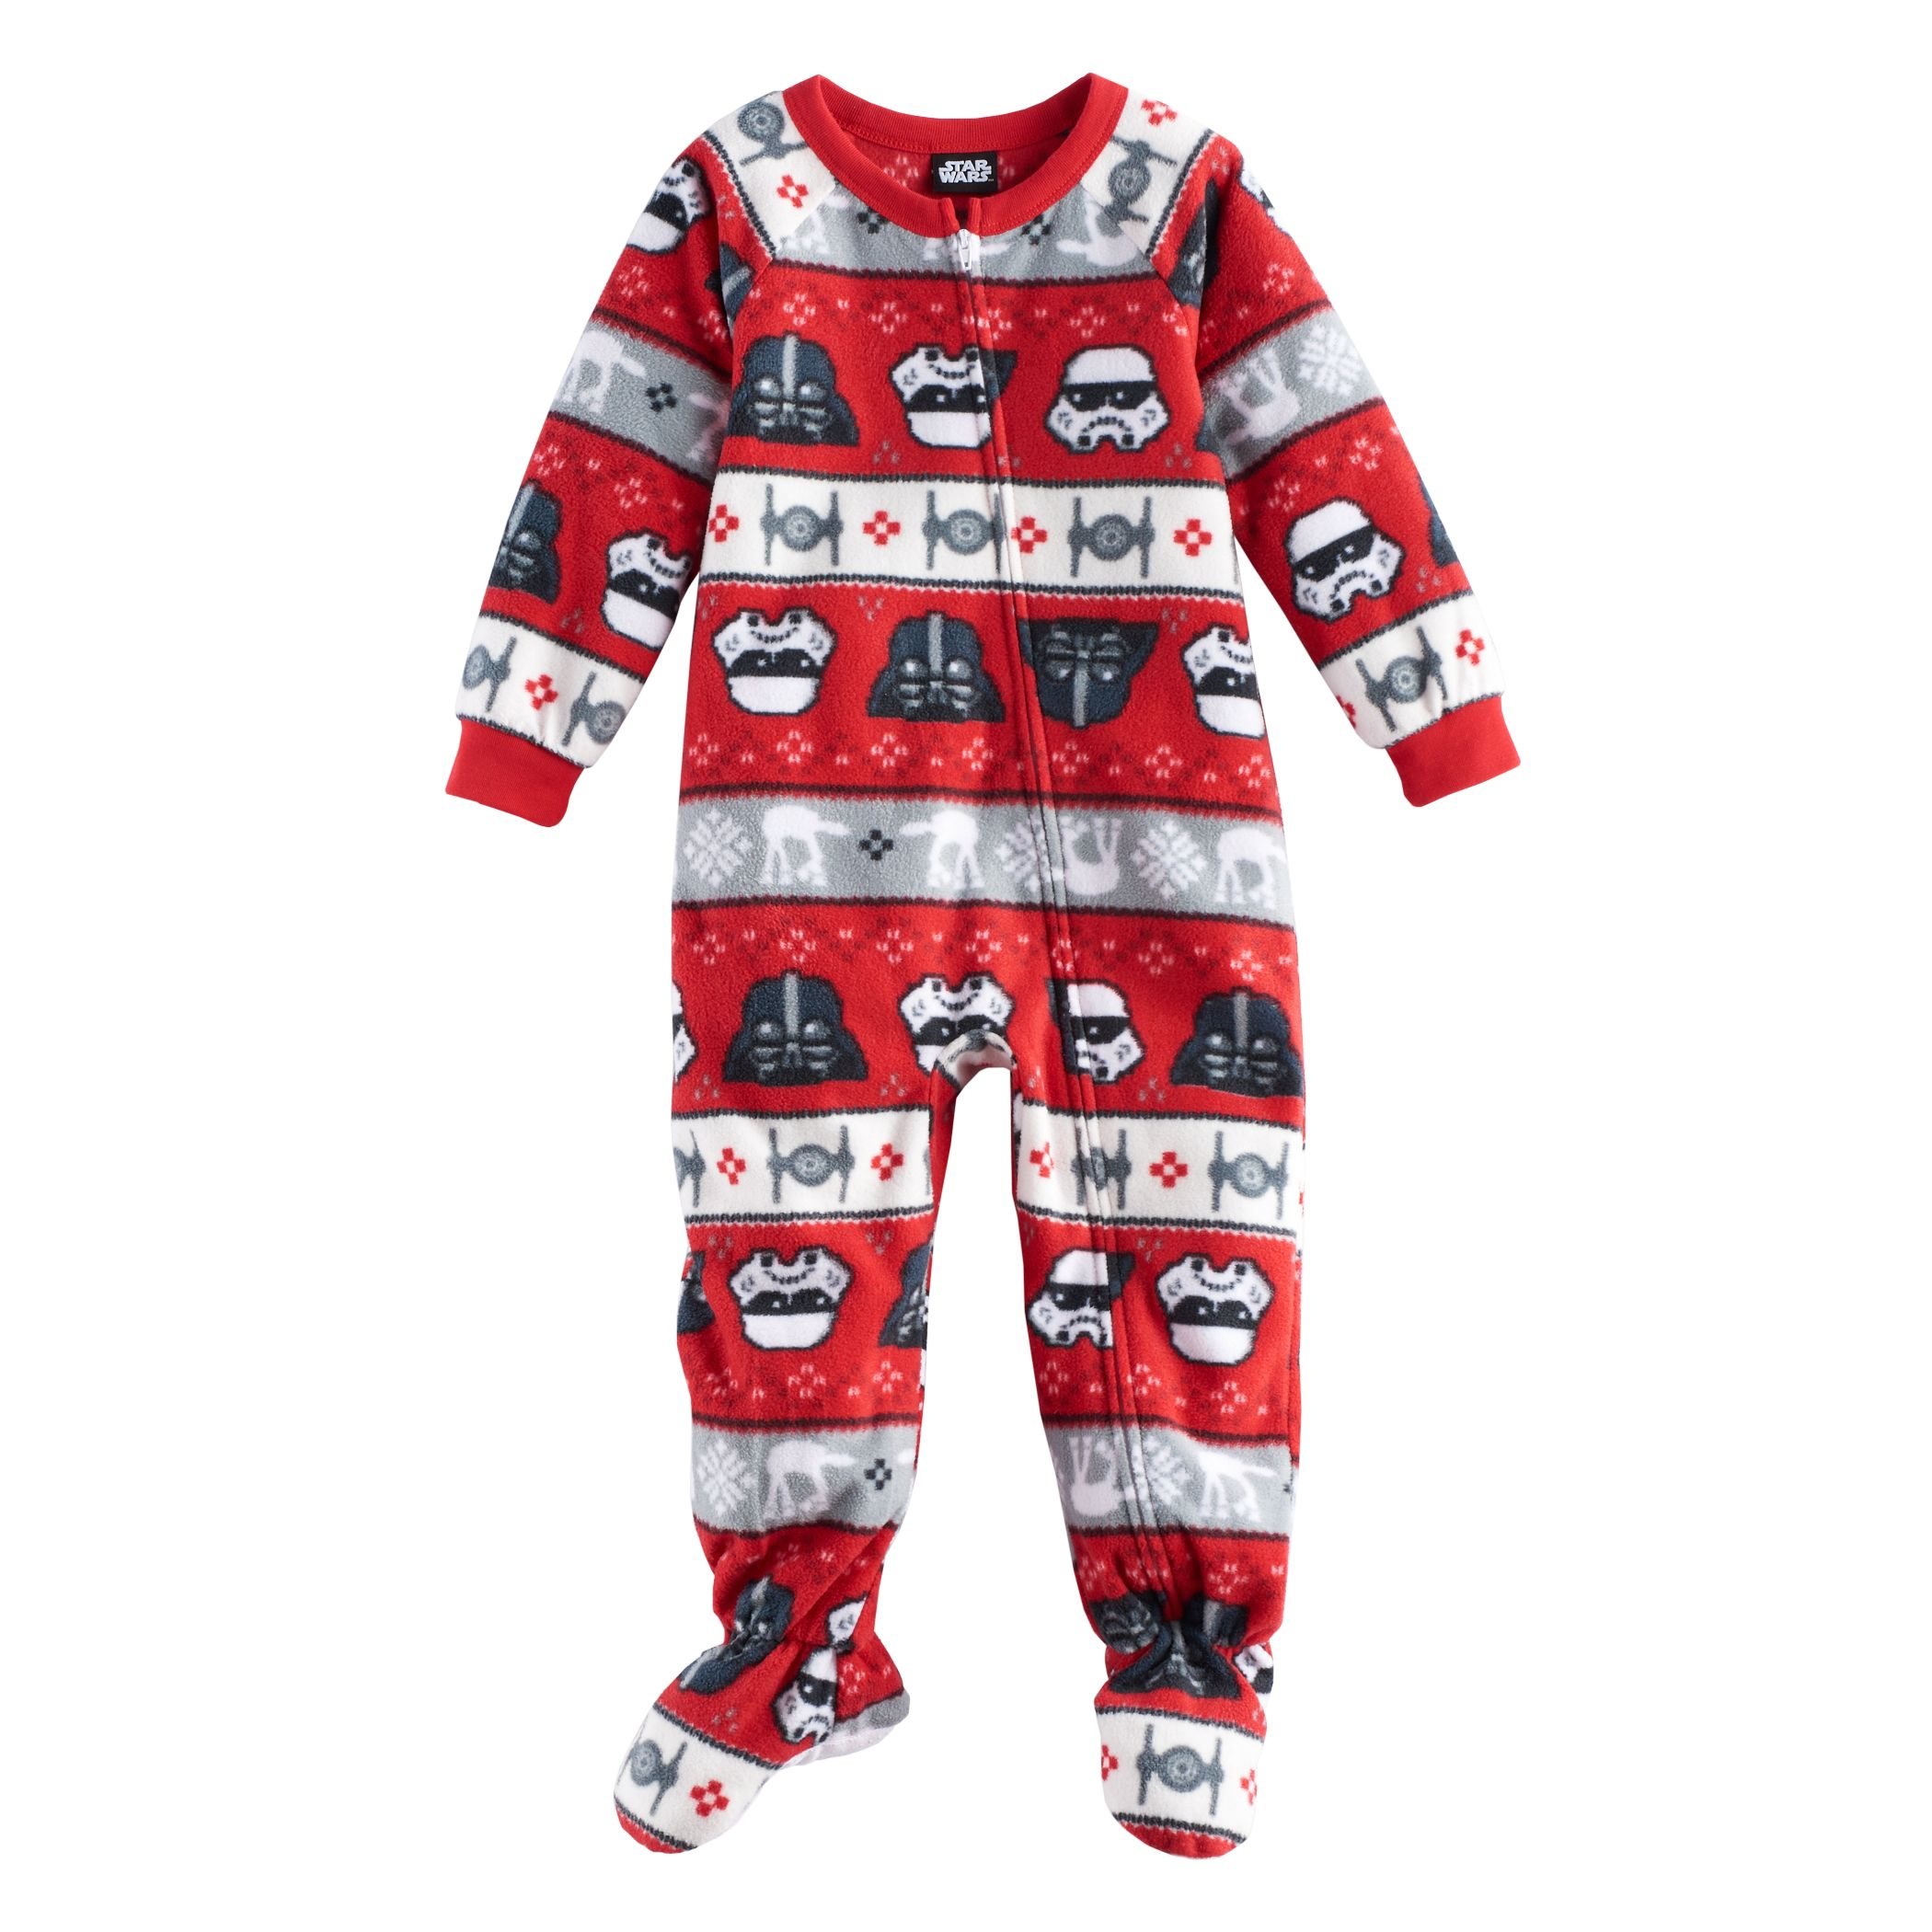 Toddler Jammies For Your Families Star Wars Darth Vader U0026 Stormtrooper  Fairisle Microfleece Footed Pajamas